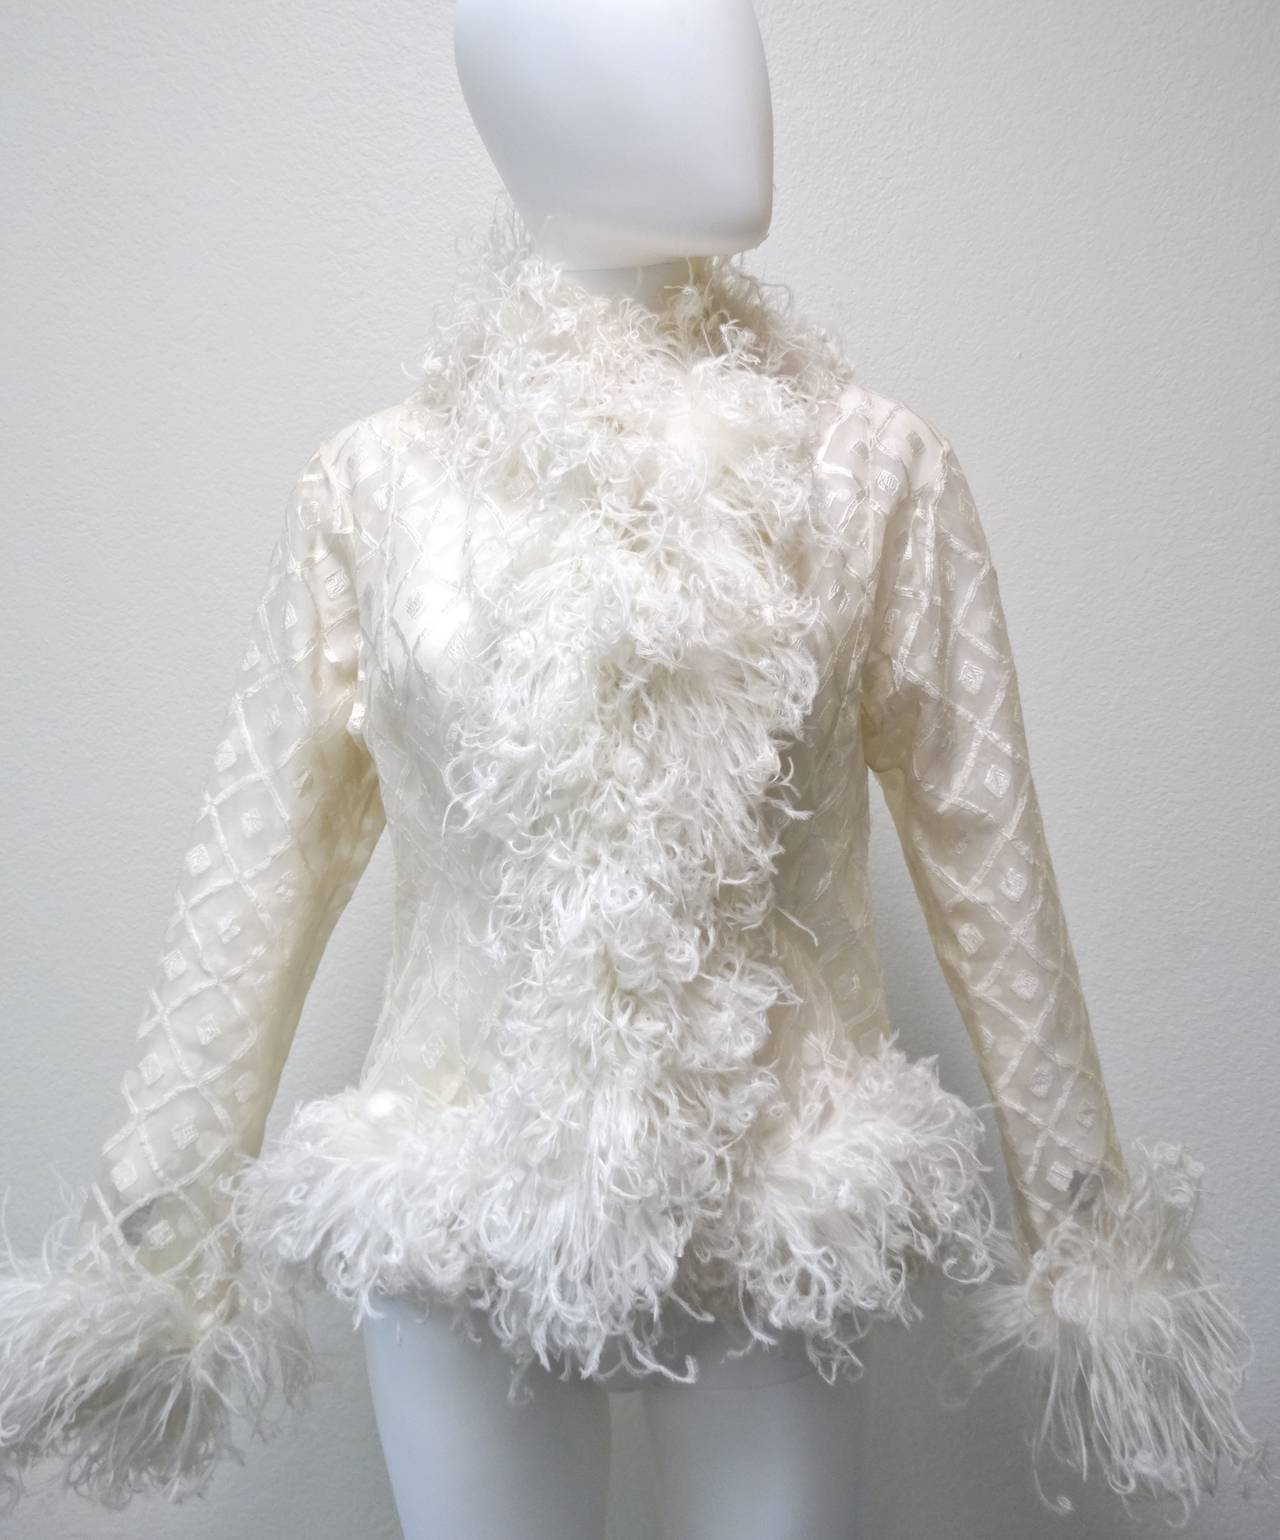 1970s Geoffrey Beene Evening Jacket with Ostrich Feathers 8